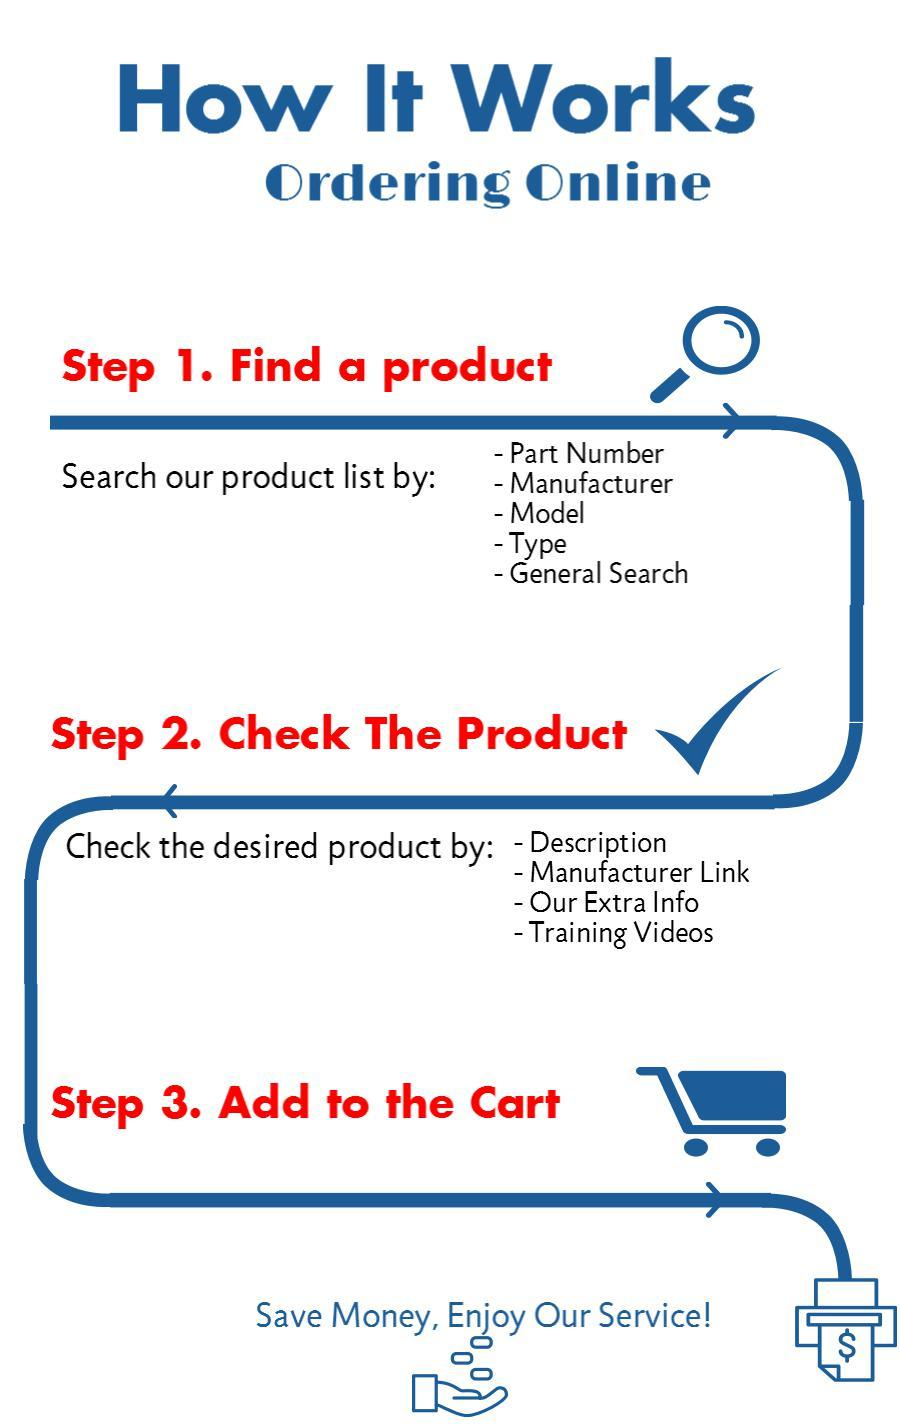 Infographic for HPLC/GC Online Ordering